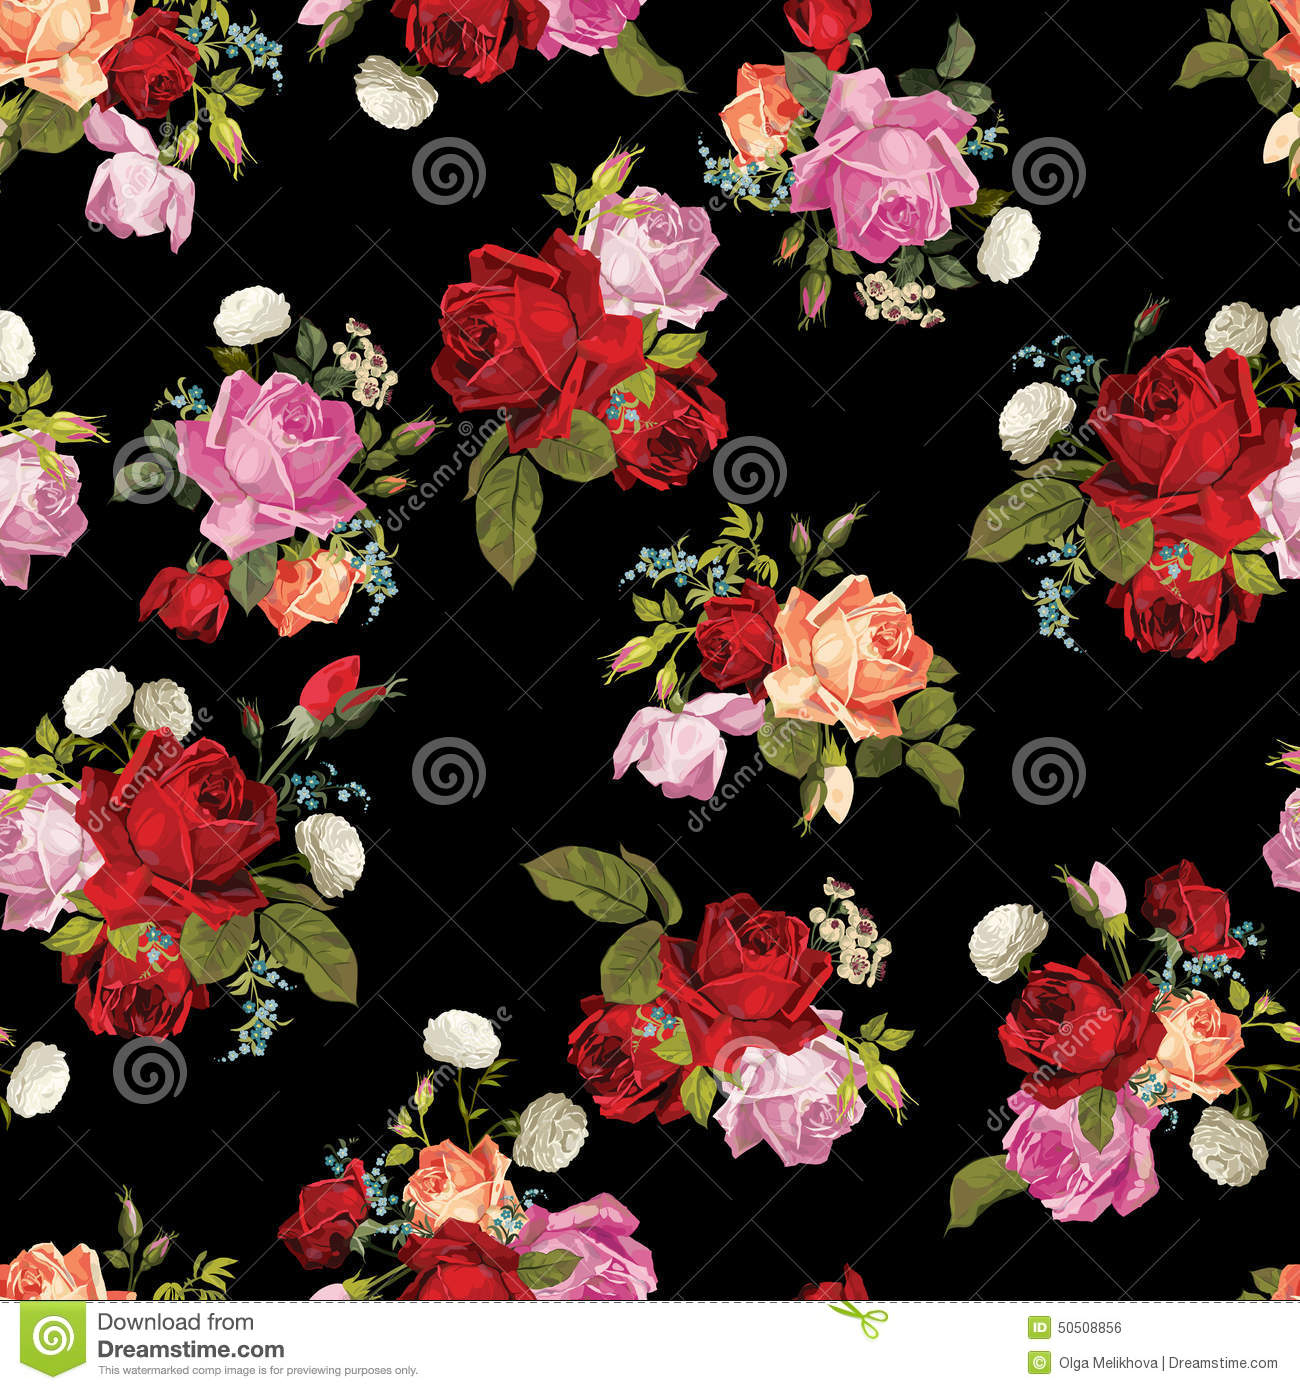 Abstract Seamless Floral Pattern With White Pink Red And Orange